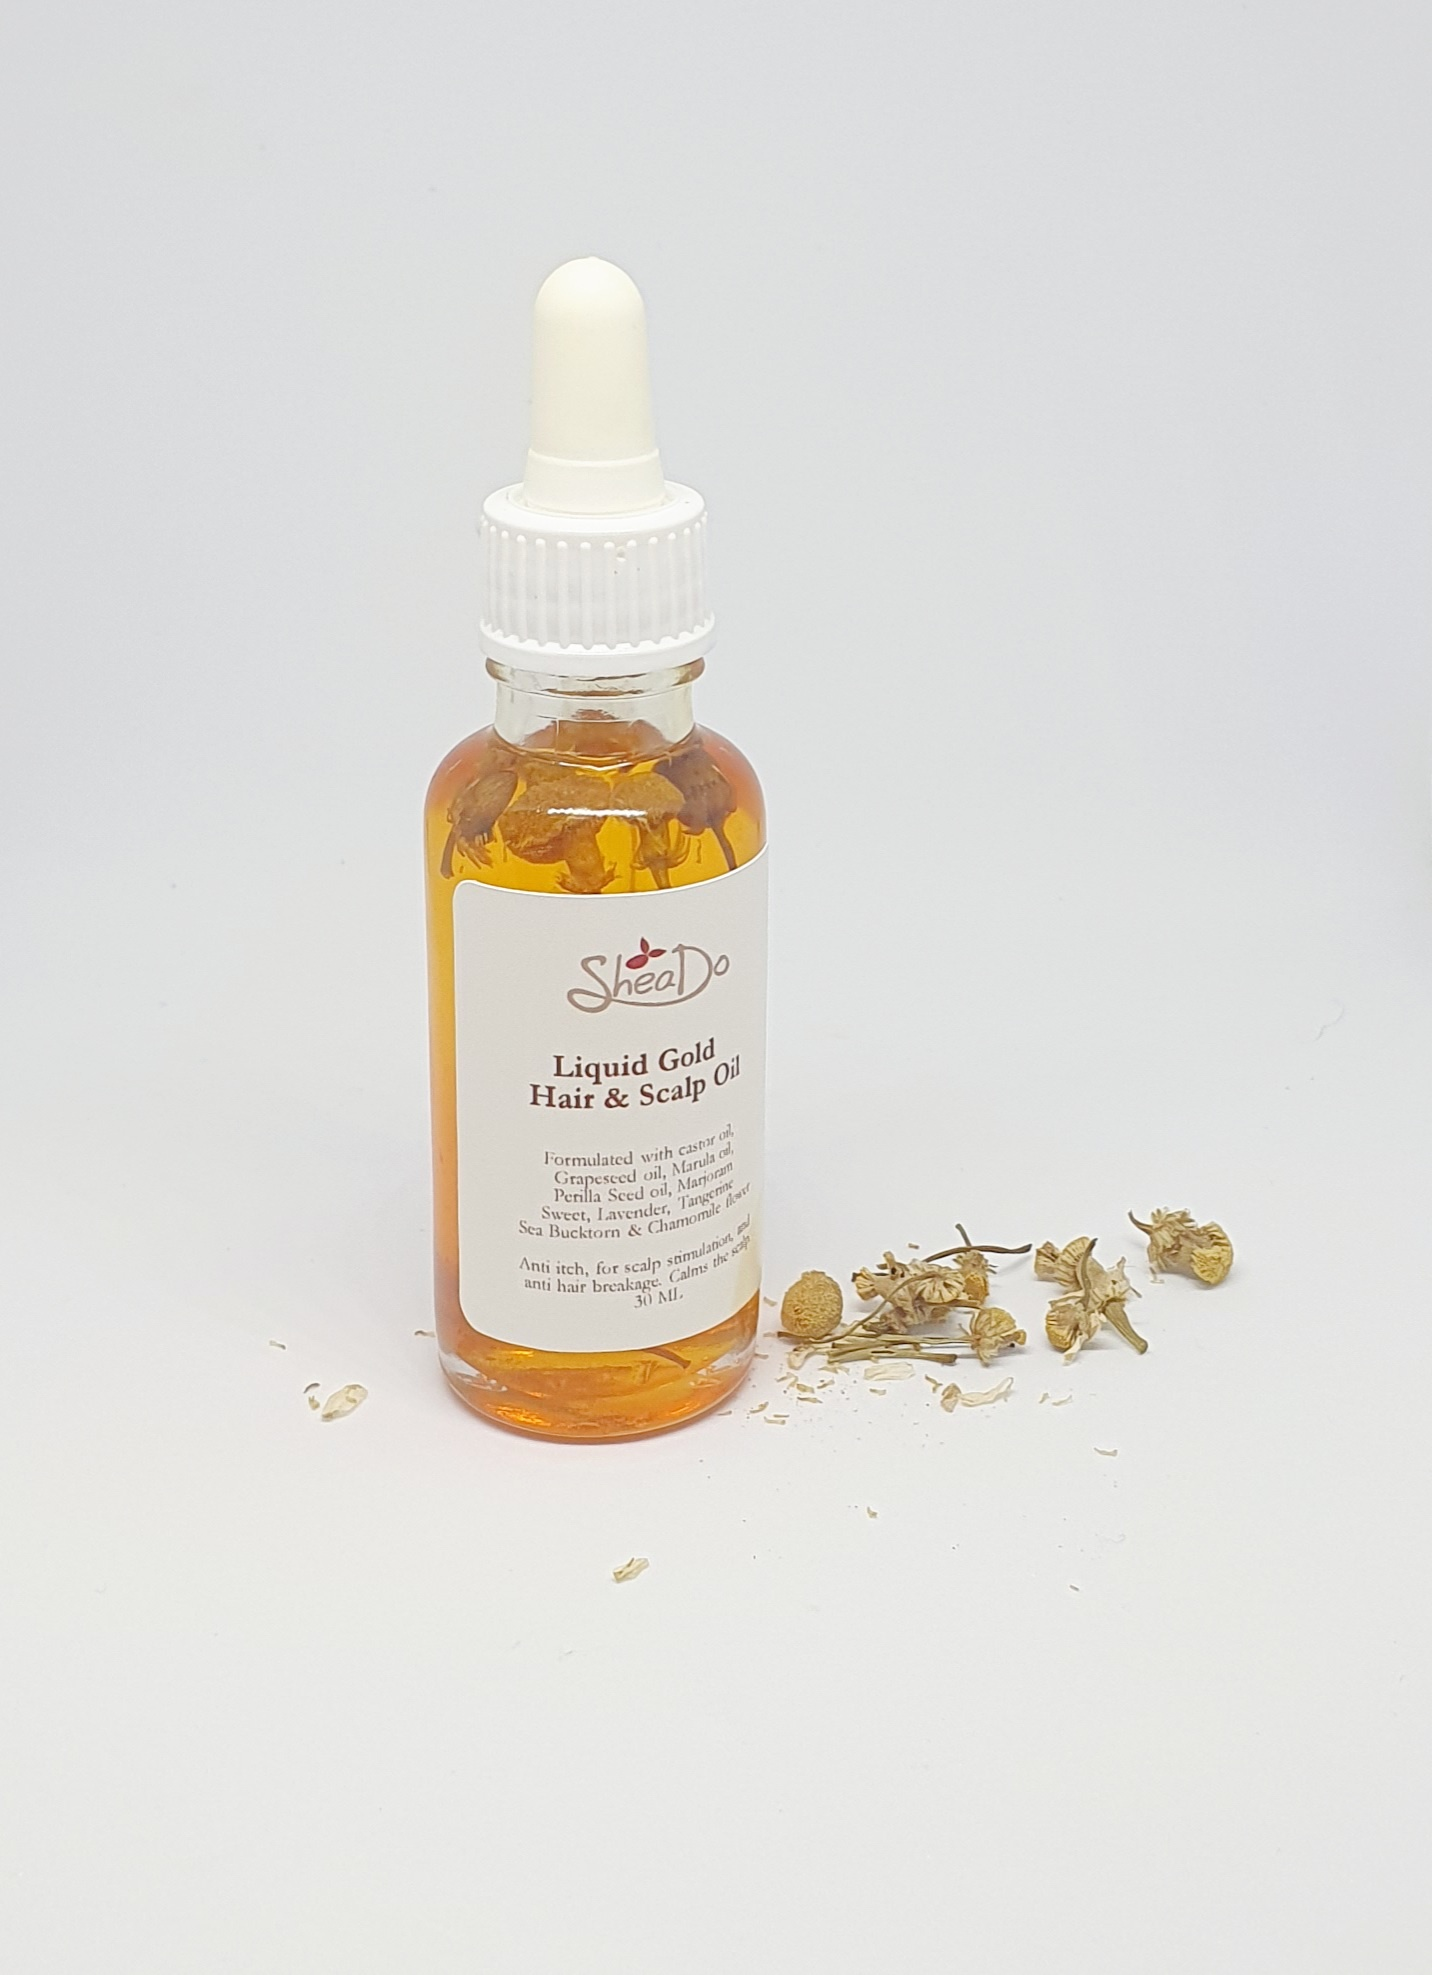 Liquid Gold Hair & Scalp Oil